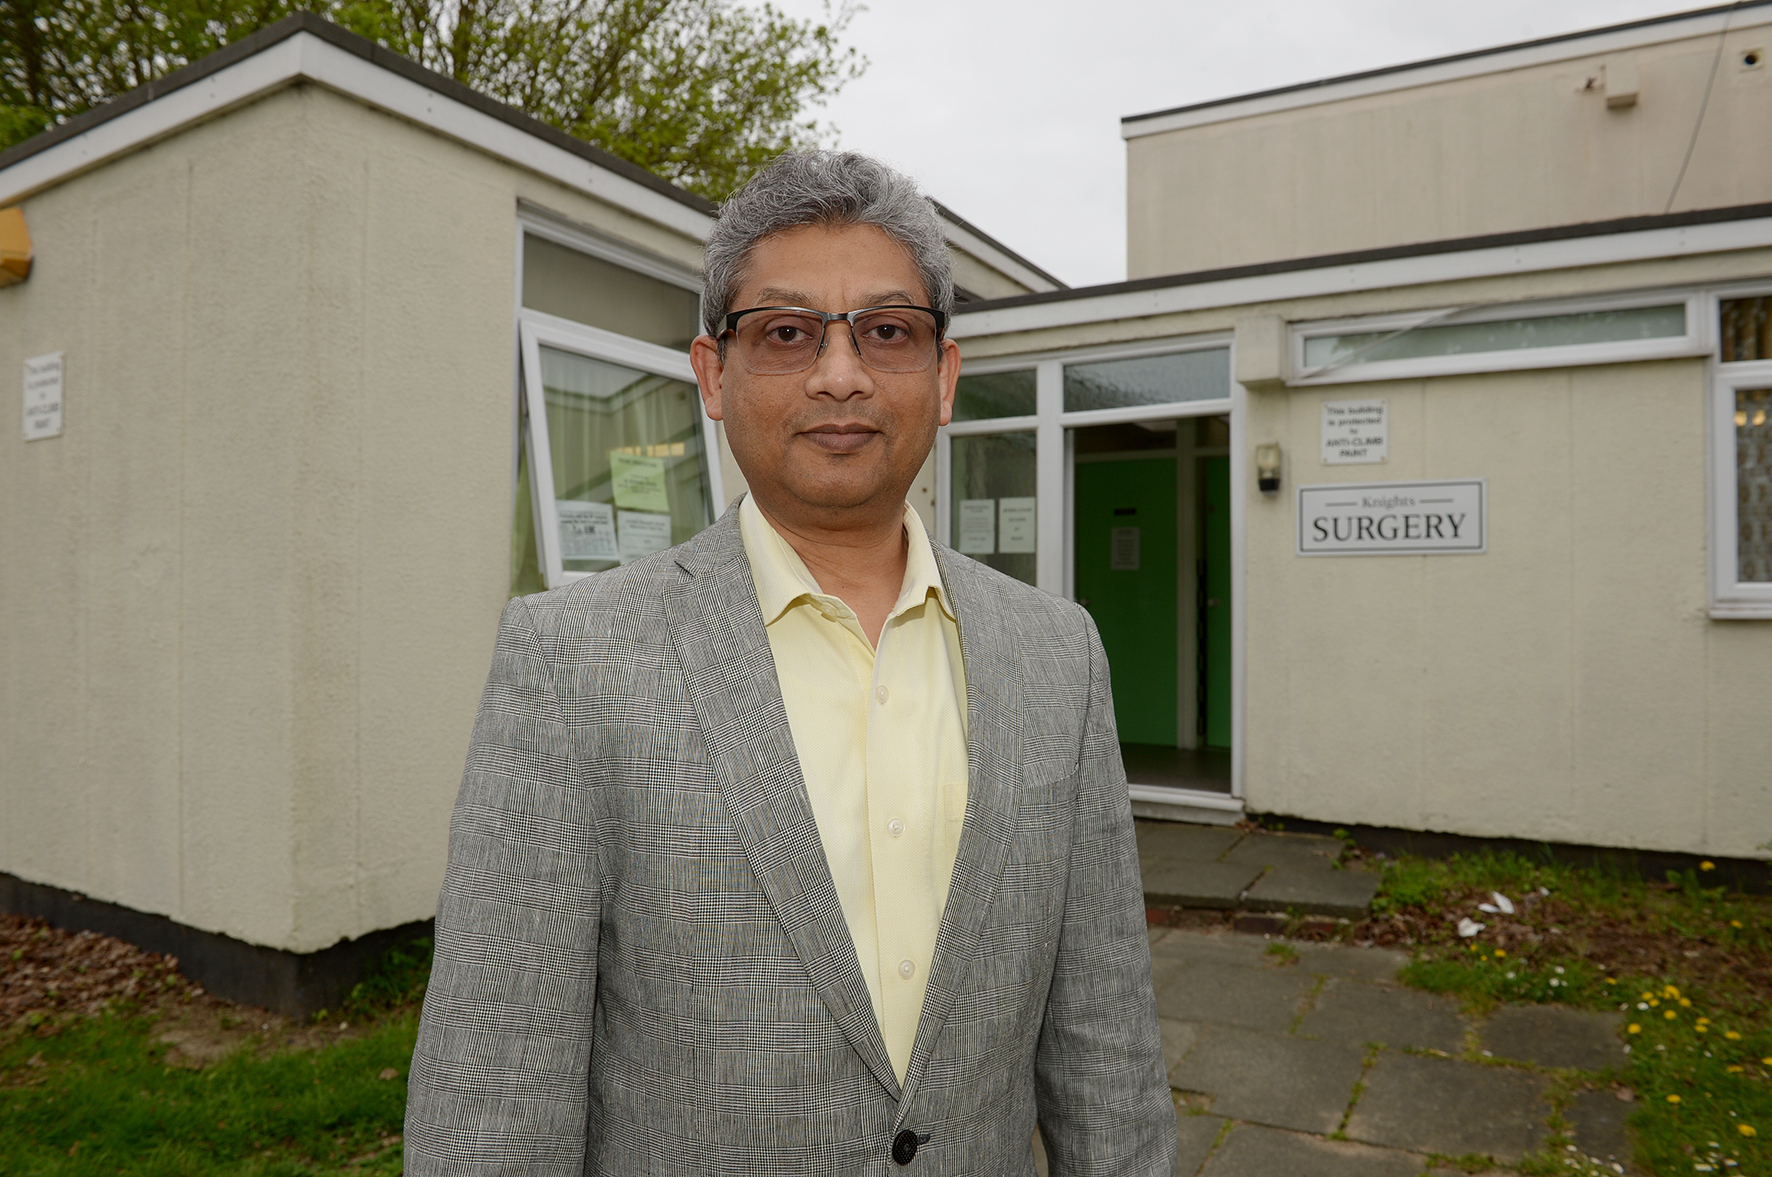 Dr Basu .Knights Surgery, 32 Knights, Basildon .Docs at Knights Surgery say its become unsafe due to uneven floors, building sinking etc.